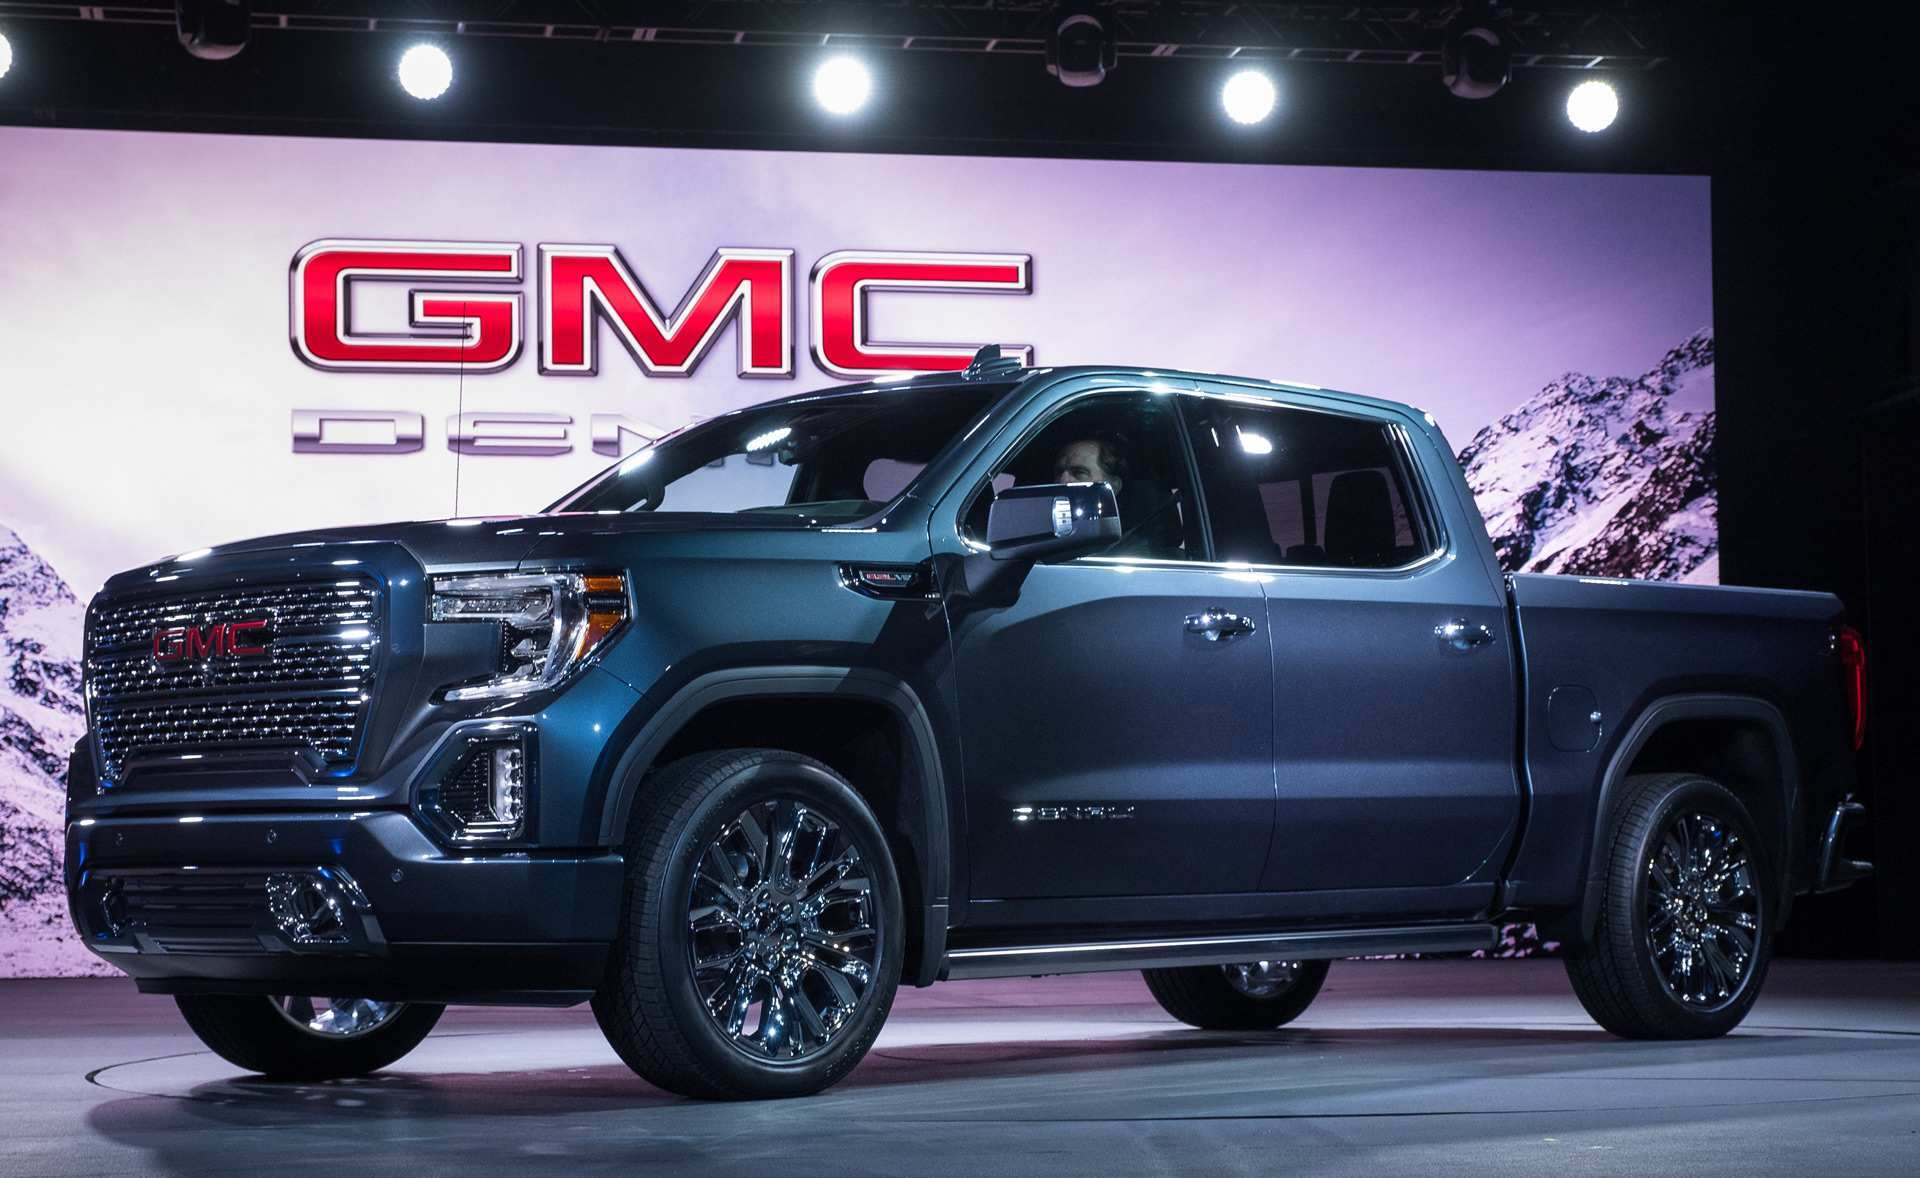 77 All New 2020 GMC 1500 Z71 Wallpaper